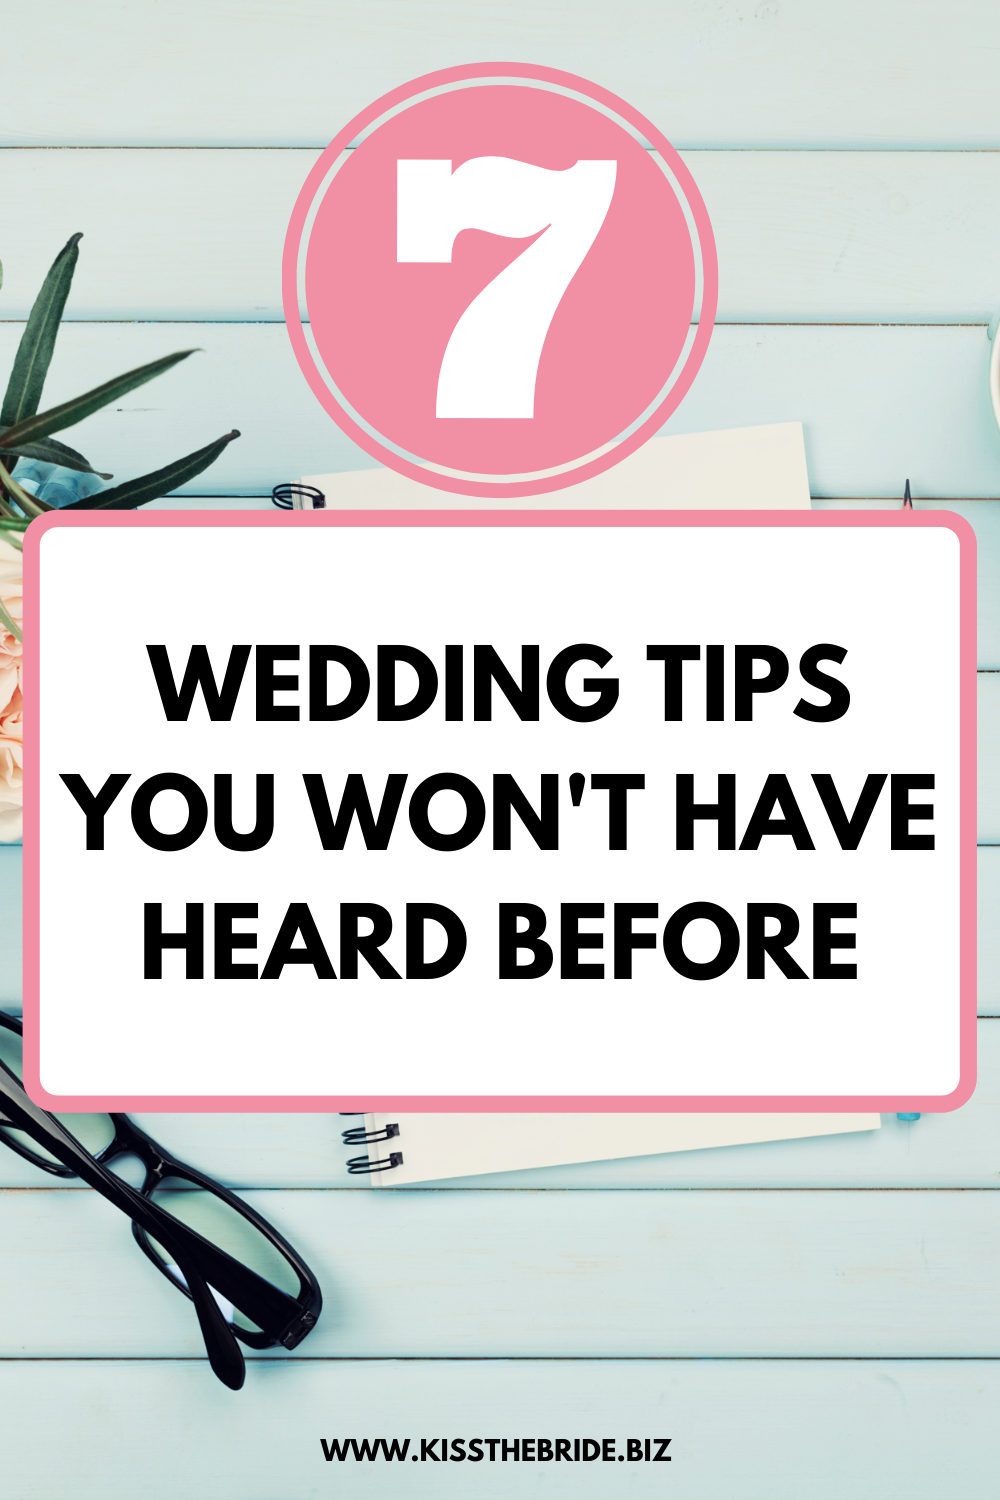 Wedding planning tips and ideas